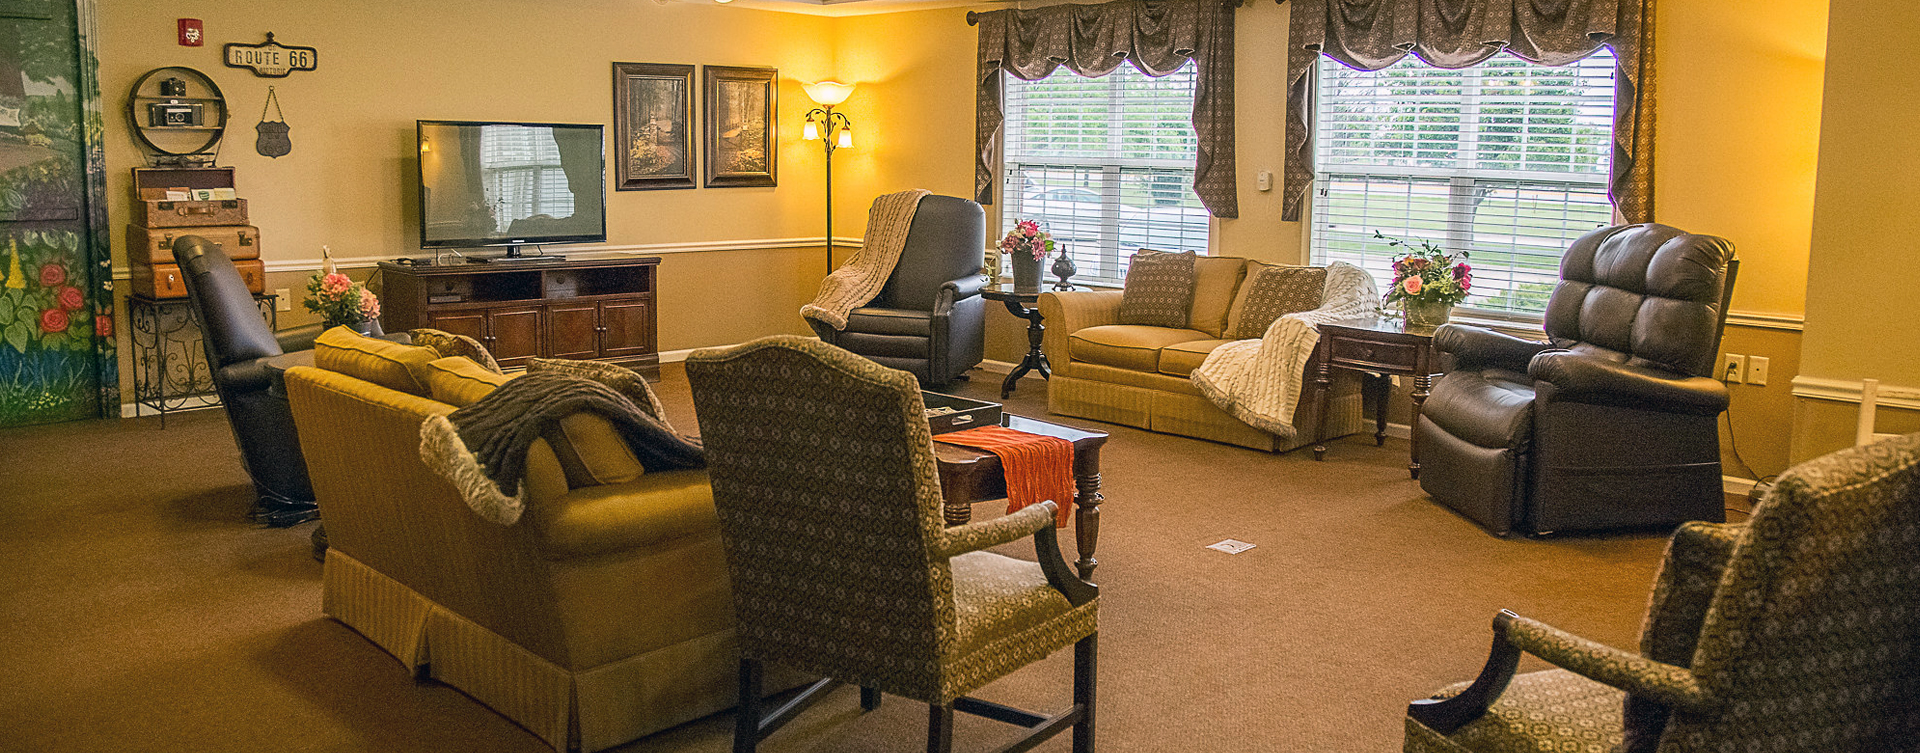 Residents can enjoy furniture covered in cozy fabrics in the Mary B's living room at Bickford of Muscatine